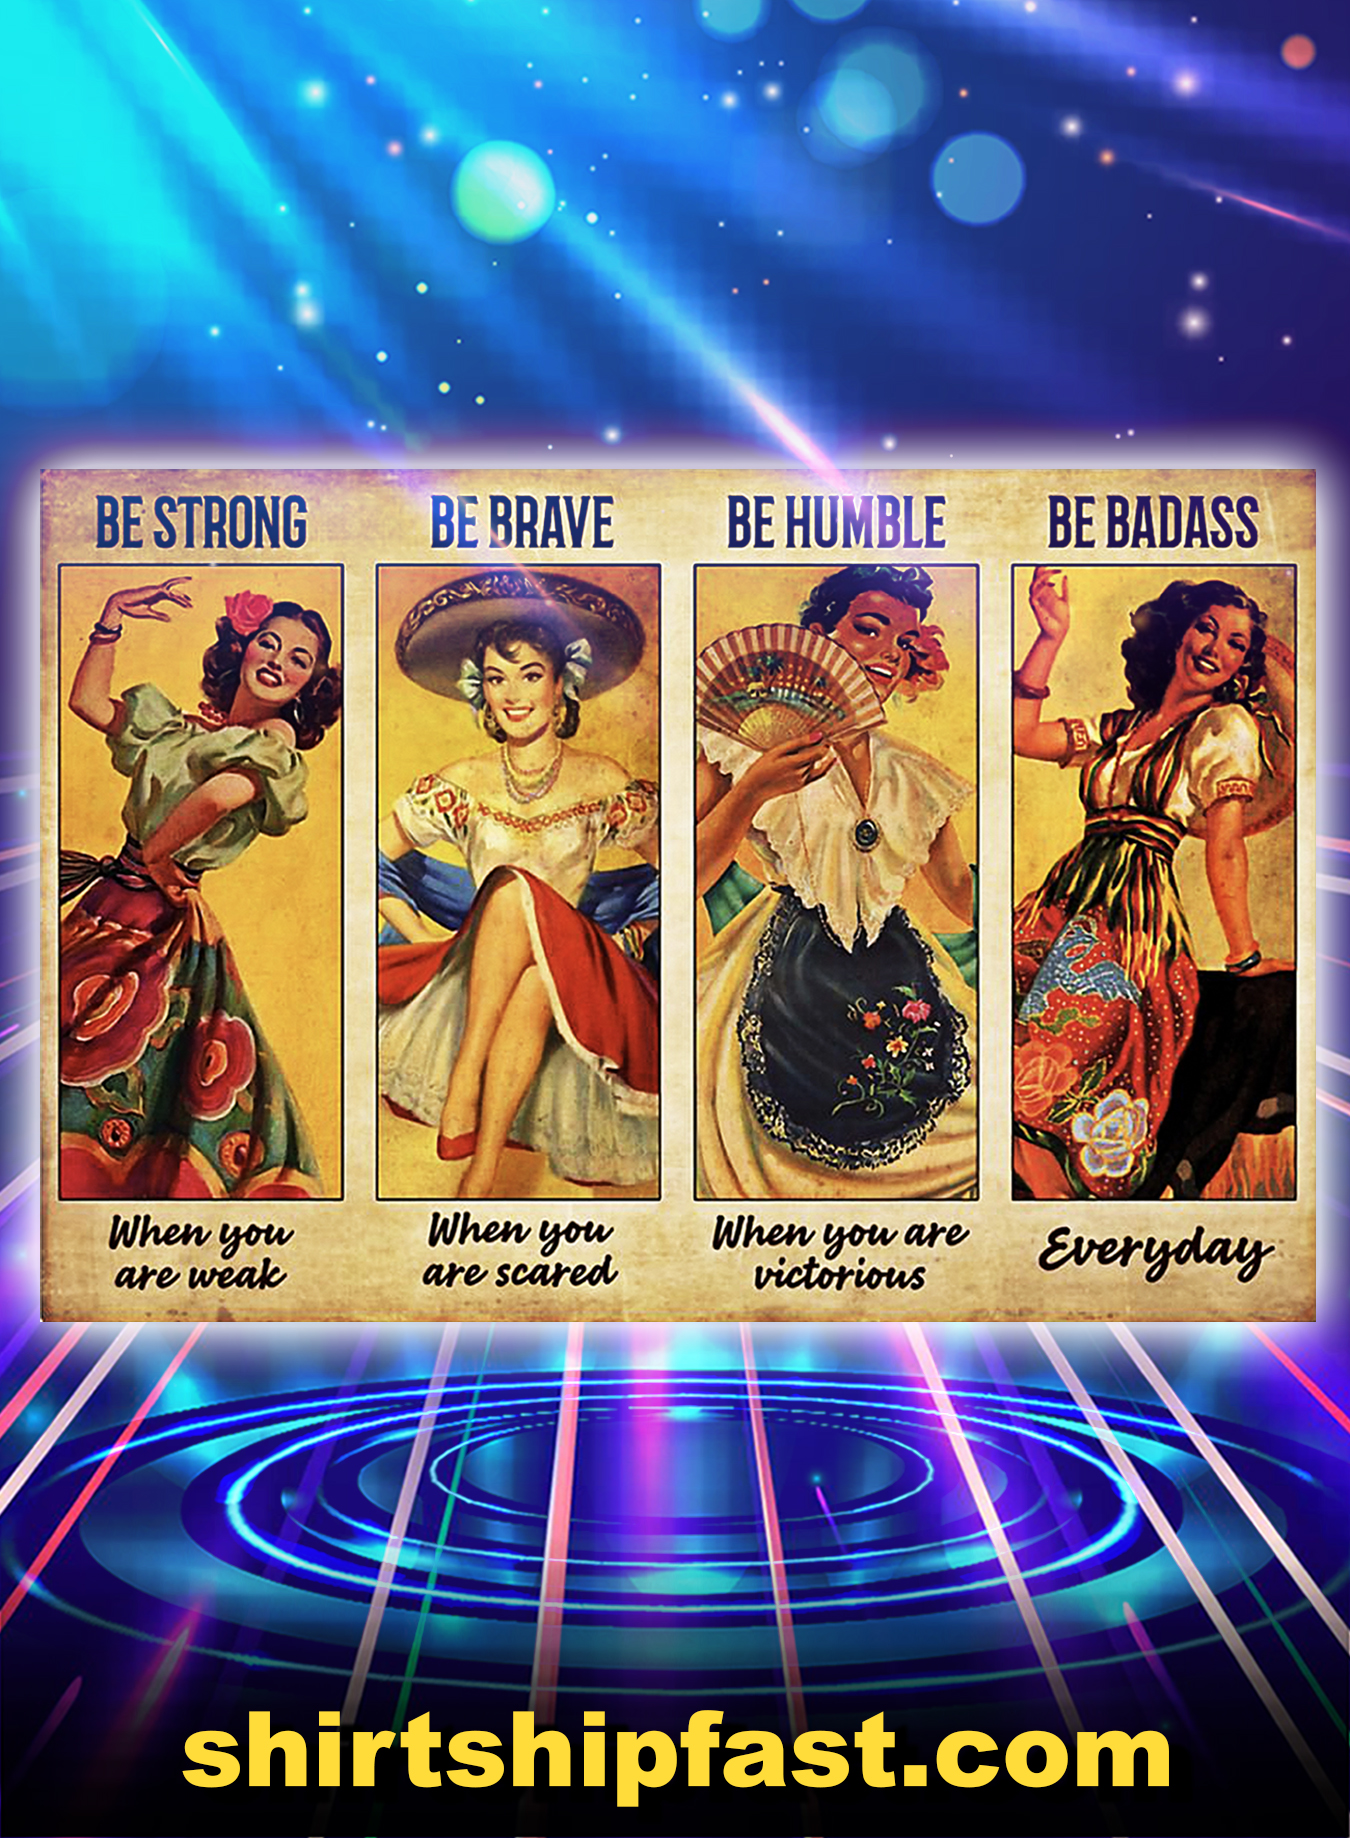 Women Mexican Dancing be strong be brave be humble be badass poster - A3